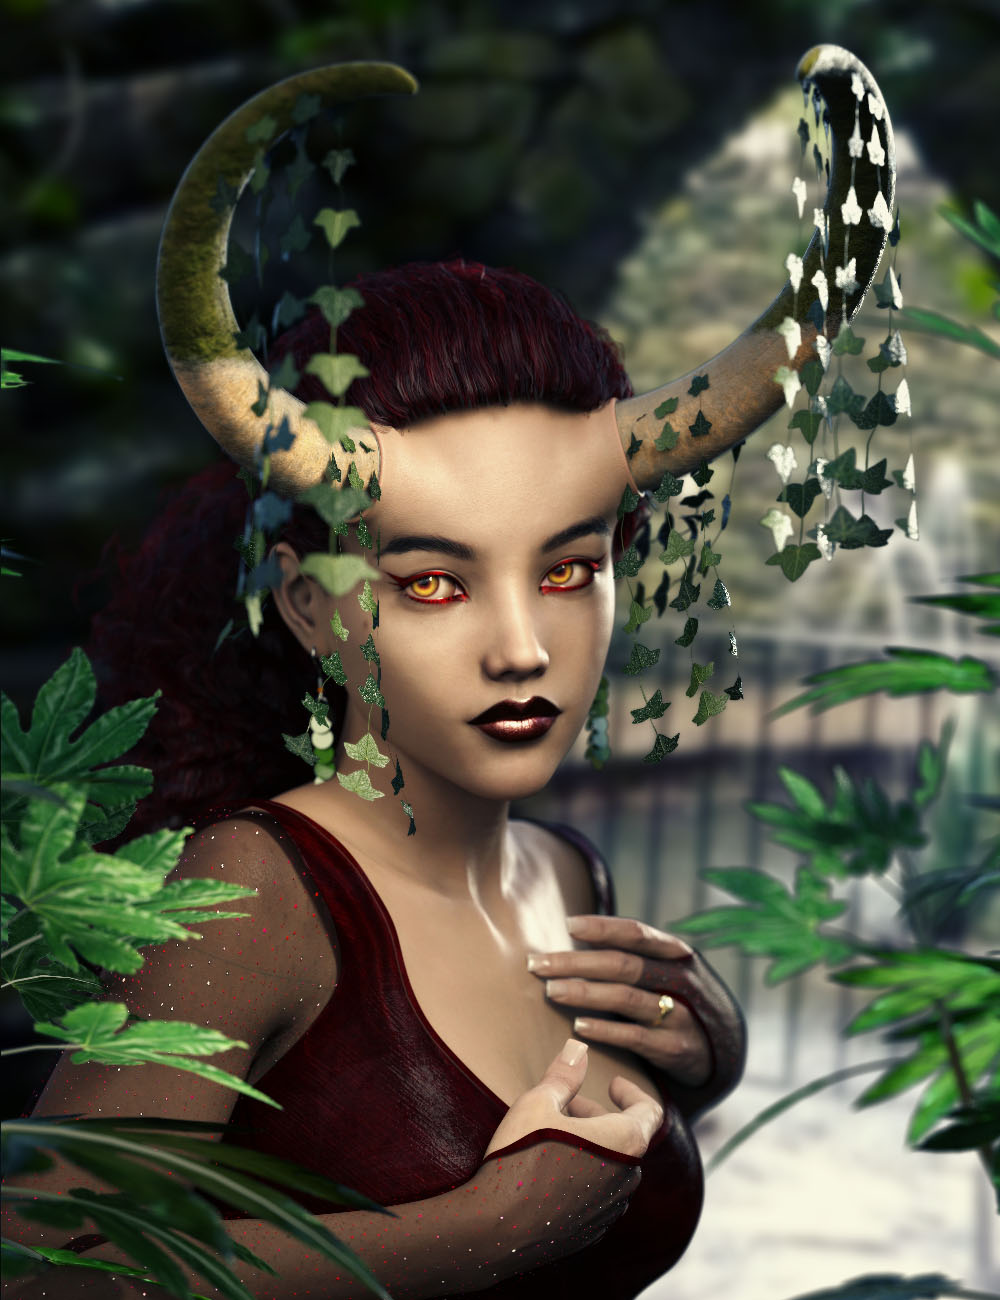 Hecate Expansion for Arcane Enchantress Horns by: ForbiddenWhispers3anson, 3D Models by Daz 3D